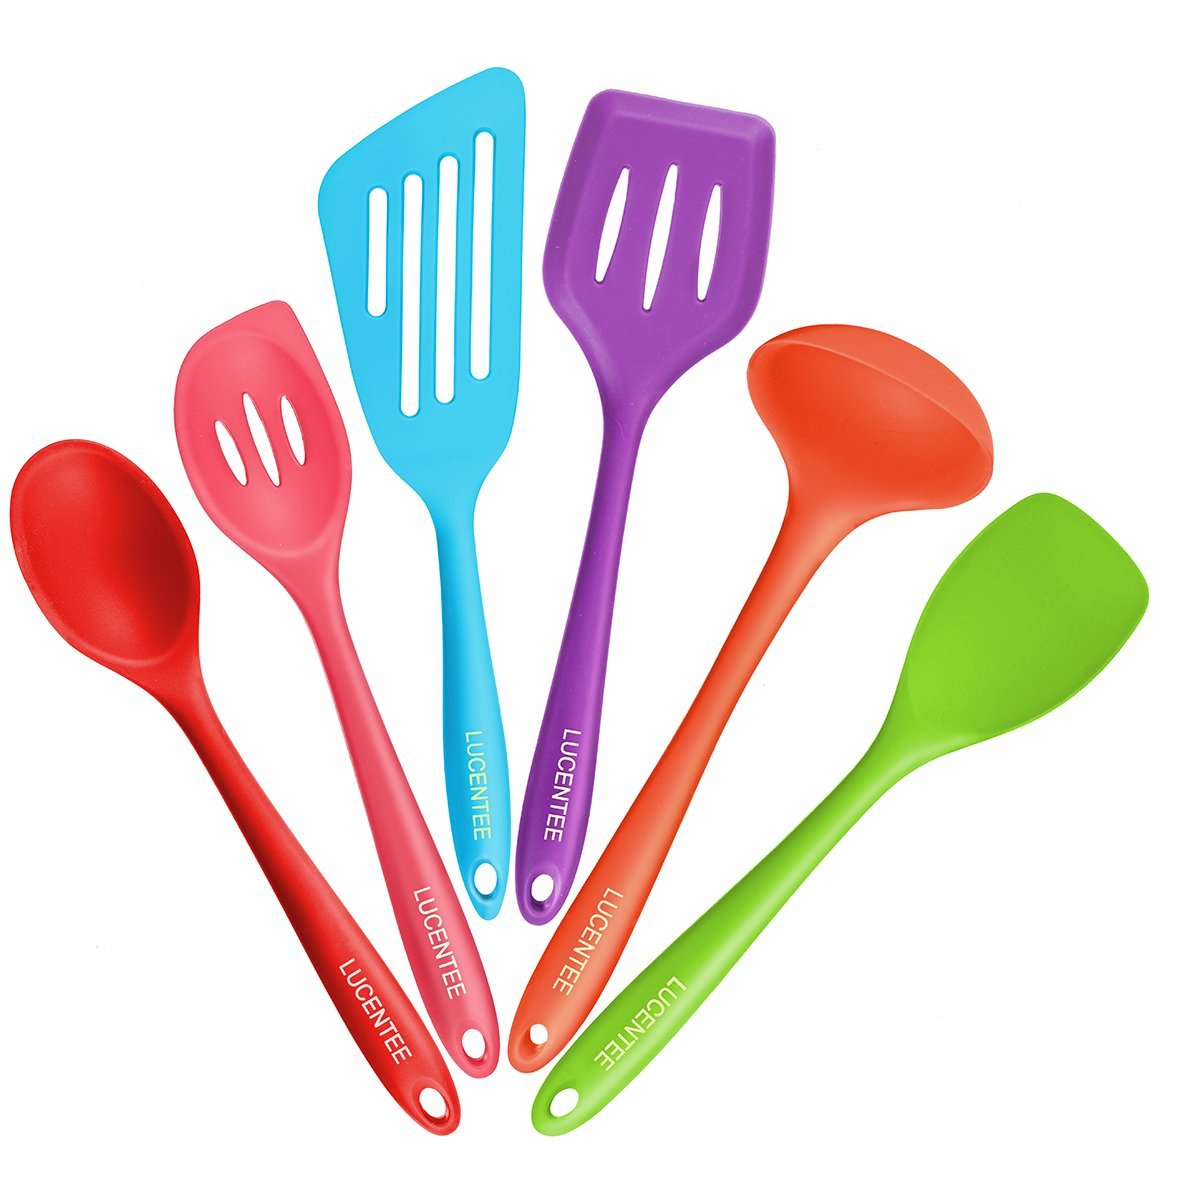 Lucentee 6-Piece Heat-Resistant Silicone Cooking Set